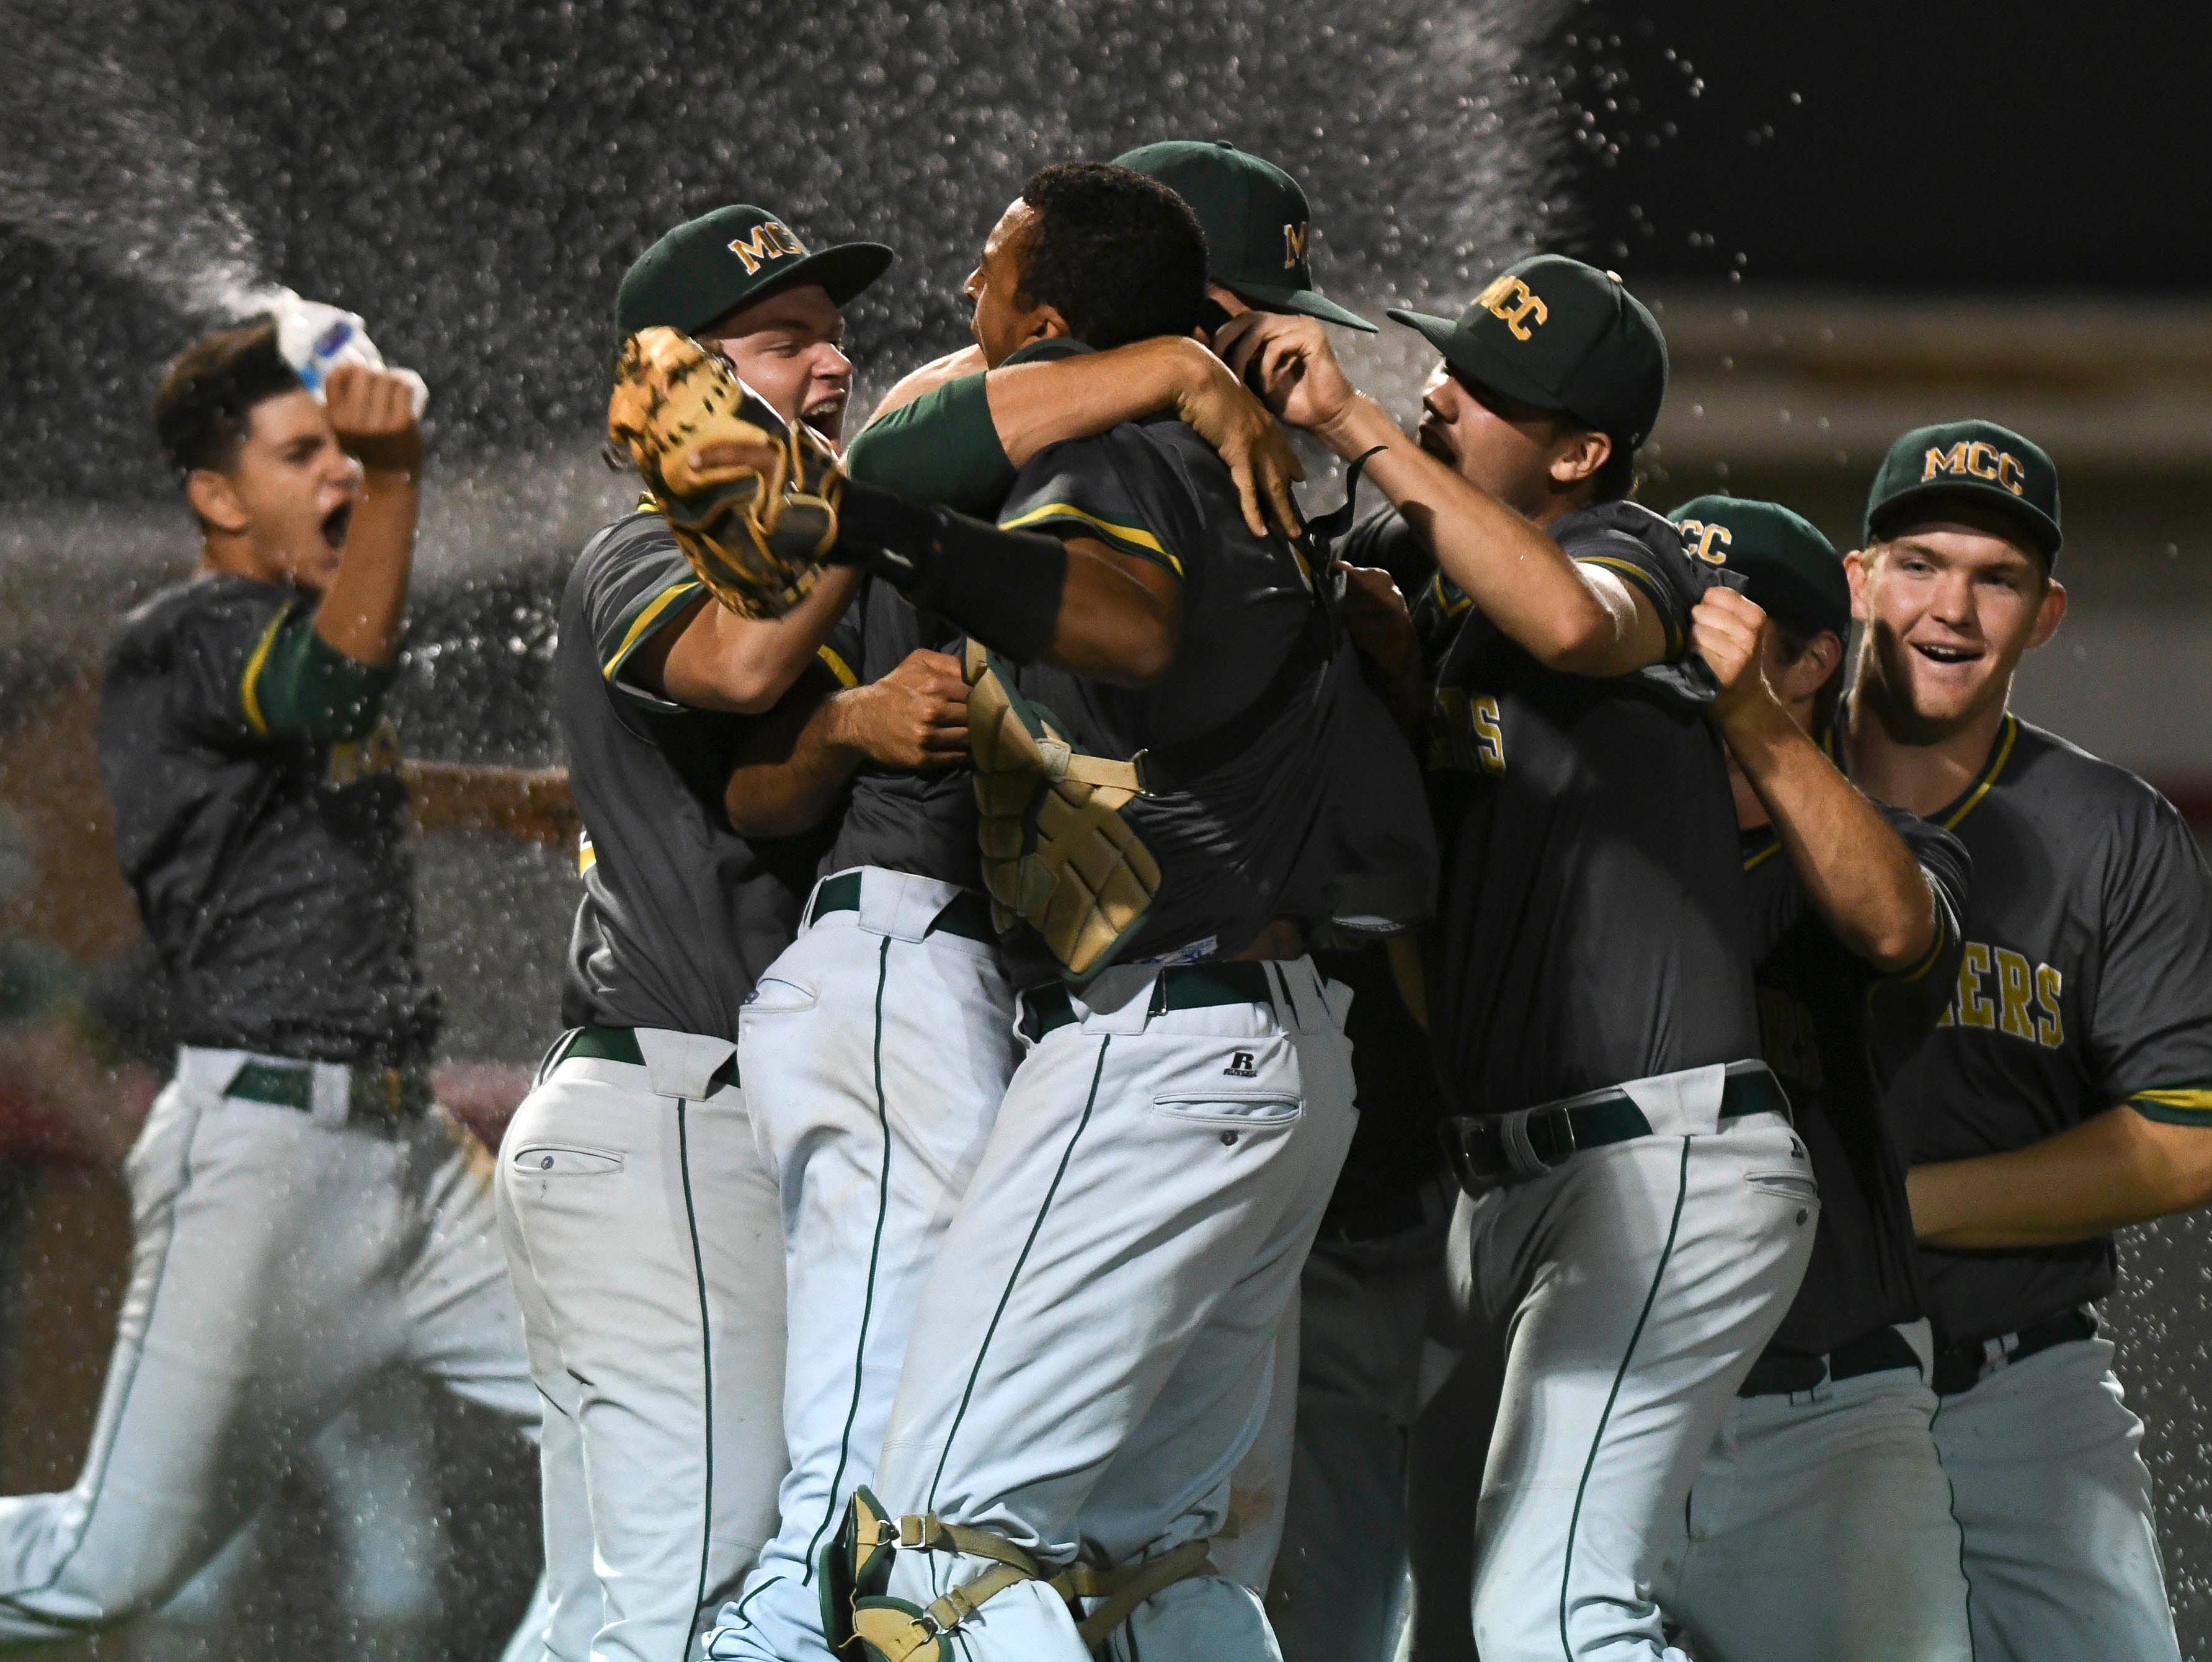 Melbourne Central Catholic players celebrate their 1-0 victory over Satellite in Friday's 9-5A baseball championship game.